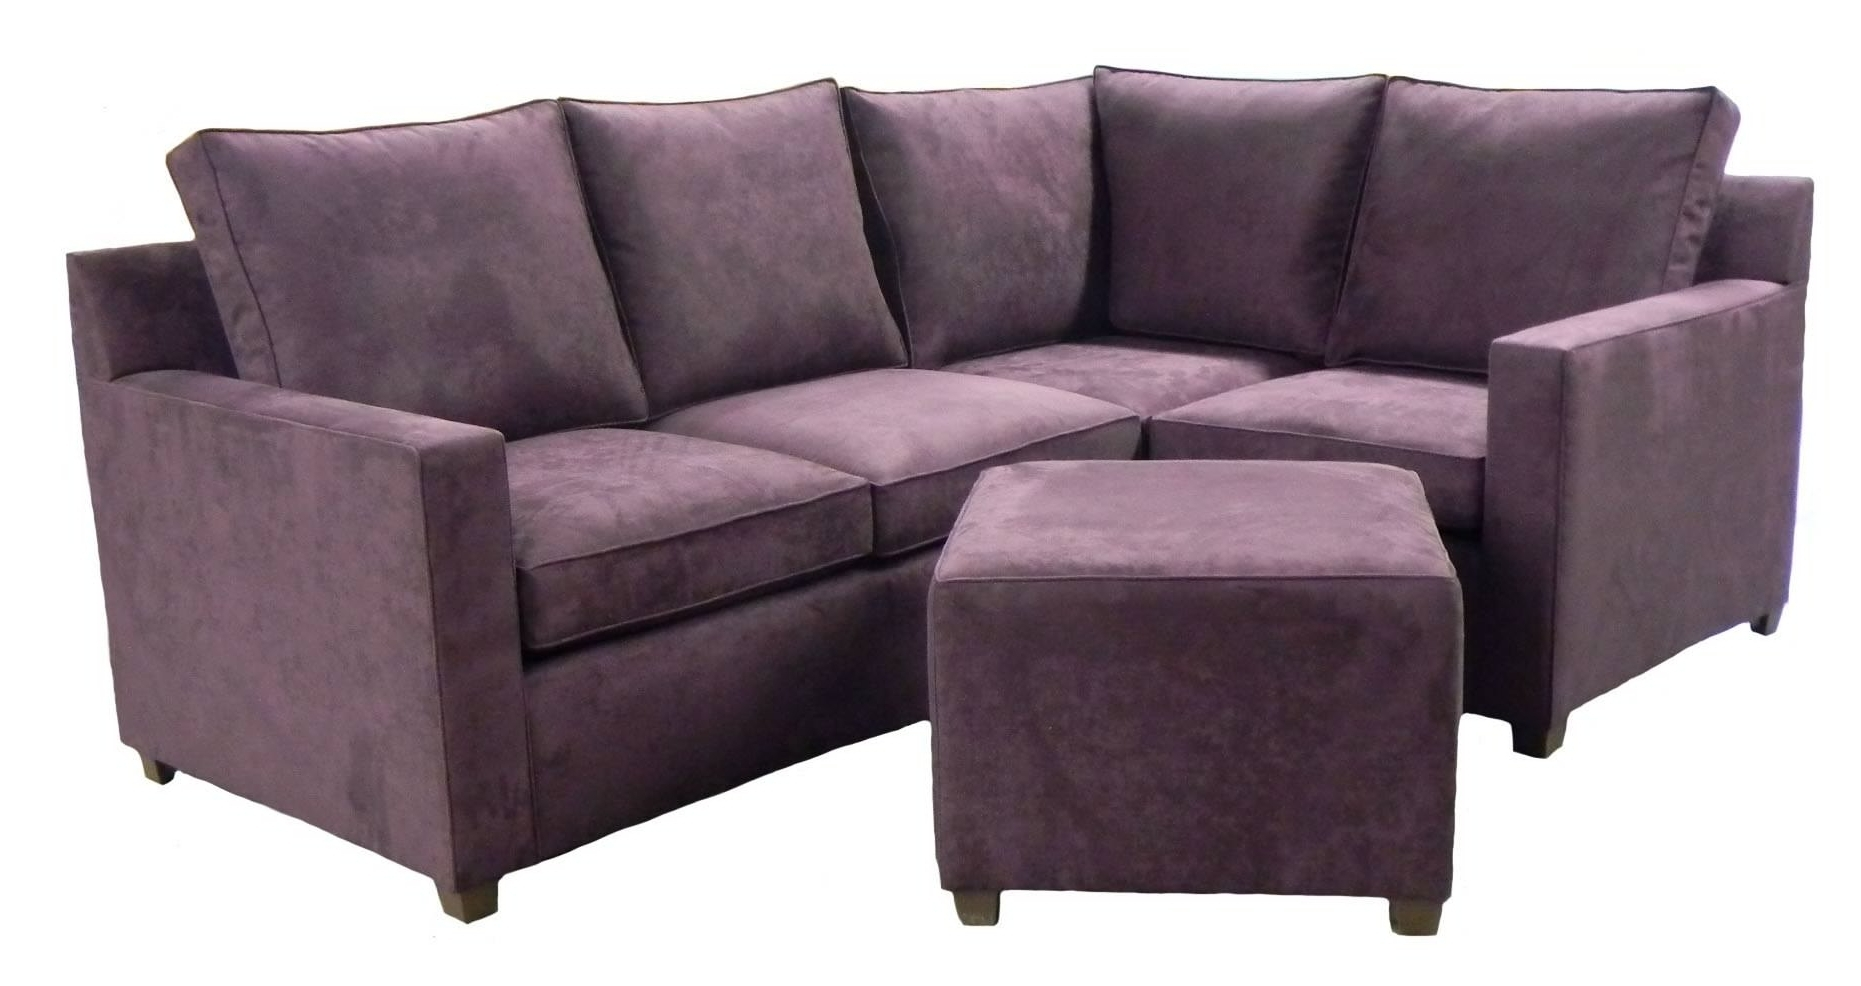 Sectional Sofa Design: Apartment Size Sectional Sofa With Chaise With Well Known Apartment Size Sectionals With Chaise (View 3 of 15)